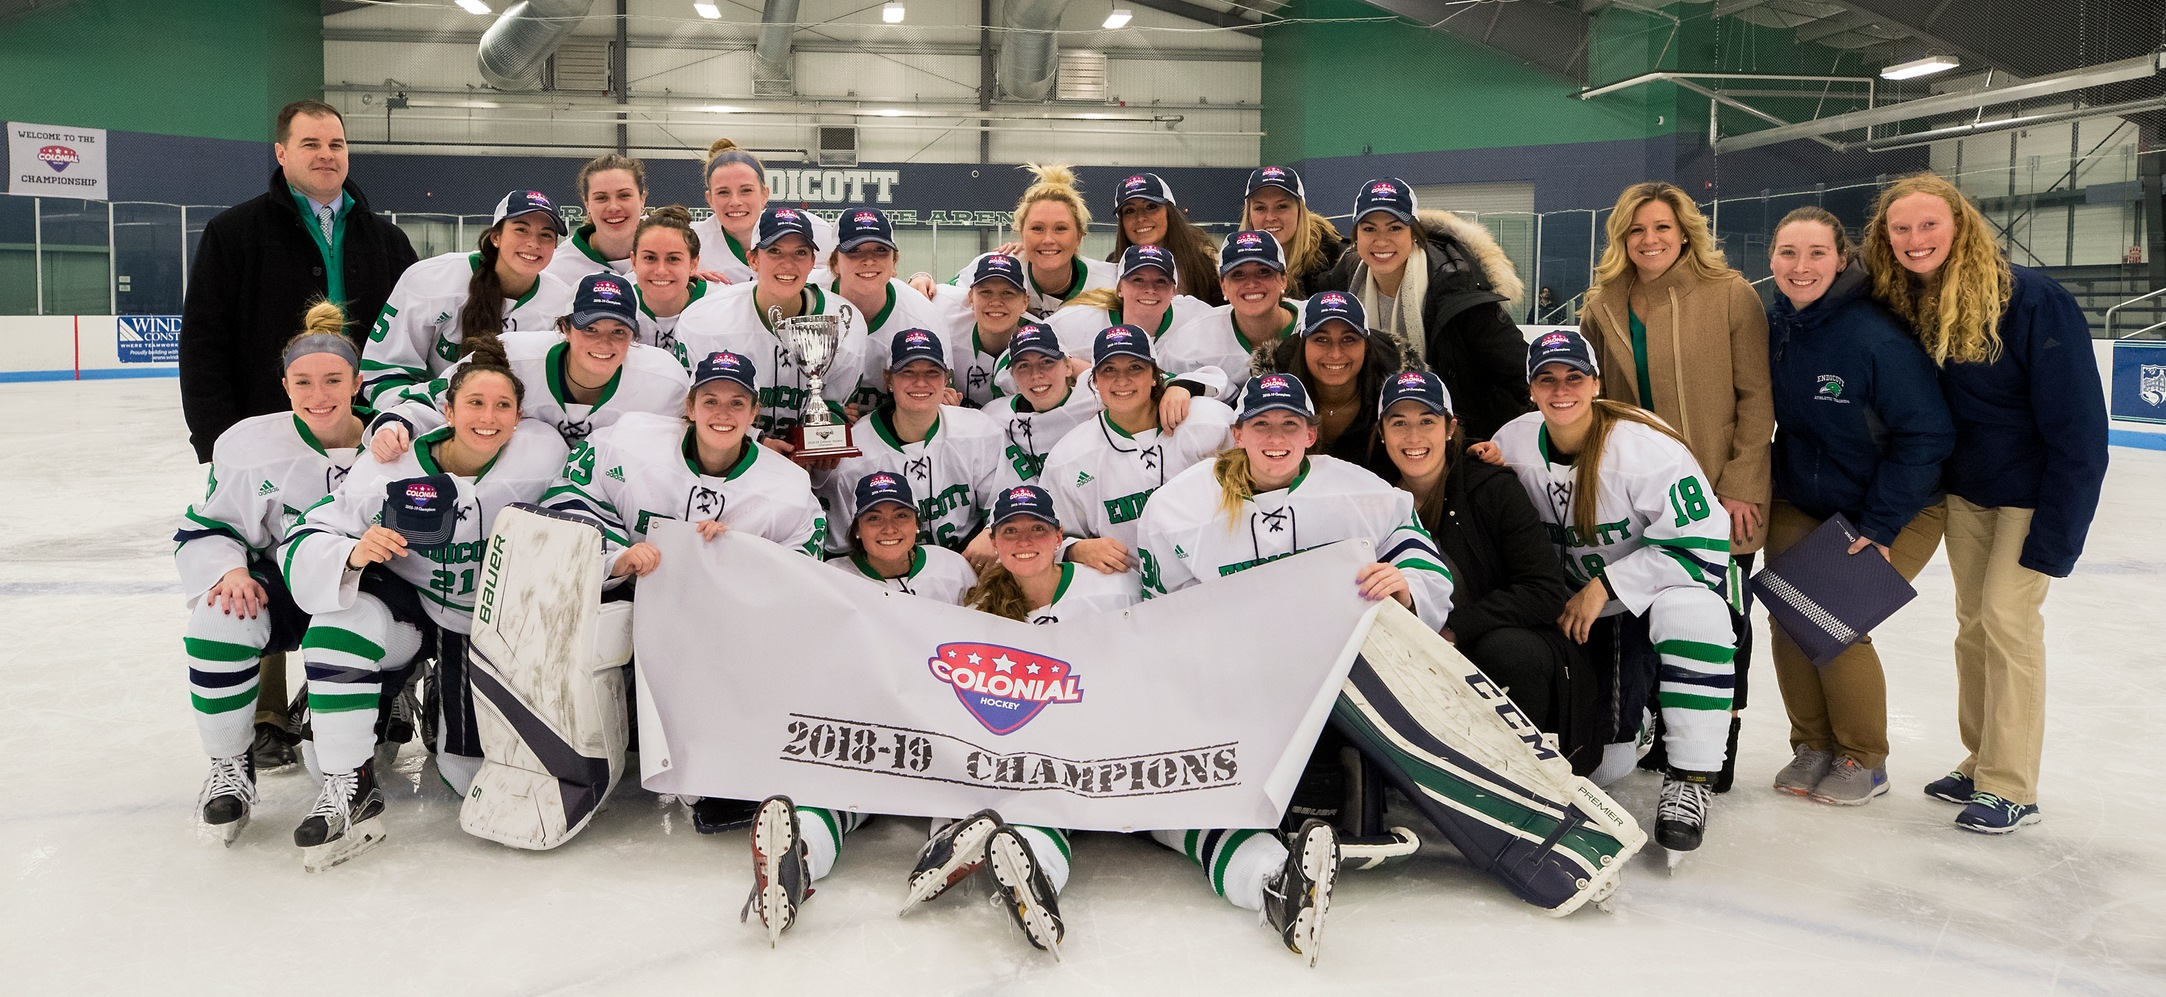 The Endicott women's ice hockey team with the CHC Championship banner.